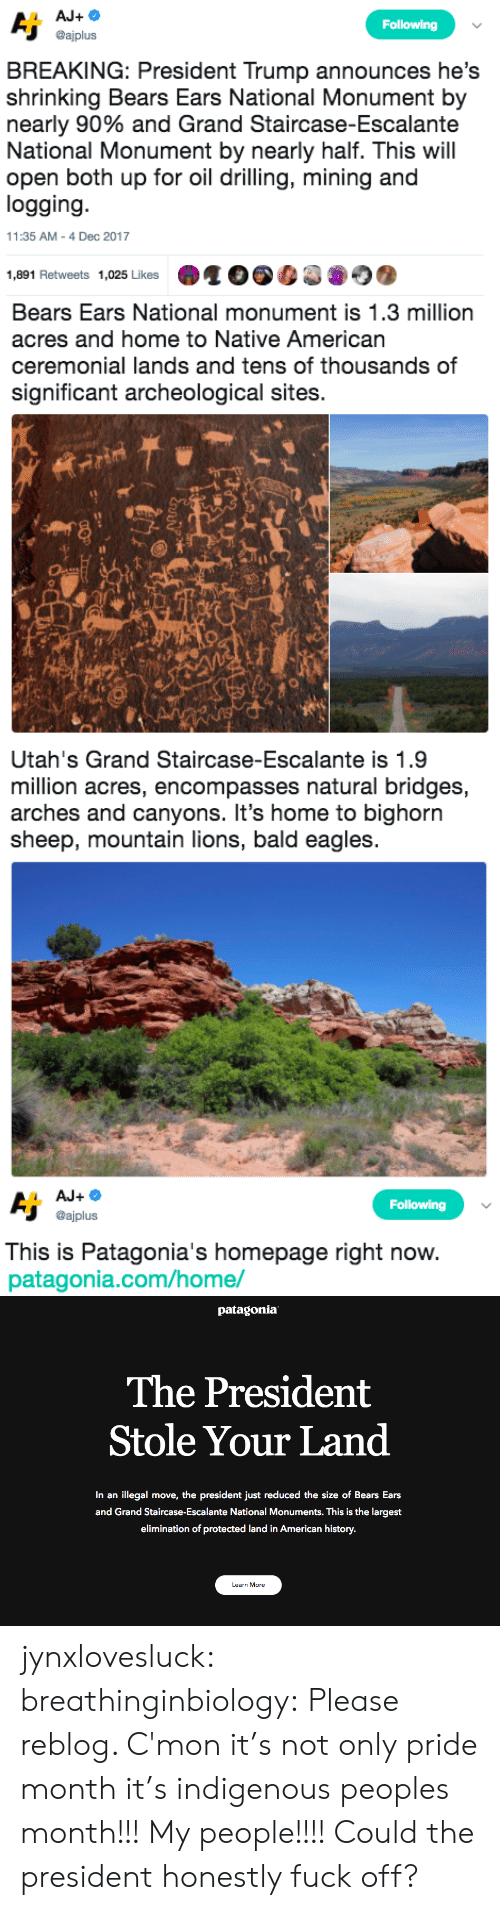 drilling: Following  @ajplus  BREAKING: President Trump announces he's  shrinking Bears Ears National Monument by  nearly 90% and Grand Staircase-Escalante  National Monument by nearly half. This will  open both up for oil drilling, mining and  logging  11:35 AM-4 Dec 2017  1,891 Retweets 1,025 Likes   Bears Ears National monument is 1.3 million  acres and home to Native American  ceremonial lands and tens of thousands of  significant archeological sites.  sh   Utah's Grand Staircase-Escalante is 1.9  million acres, encompasses natural bridges,  arches and canyons. It's home to bighorn  sheep, mountain lions, bald eagles   Following  @ajplus  This is Patagonia's homepage right now  patagonia.com/home/   patagonia  The President  Stole Your Land  In an illegal move, the president just reduced the size of Bears Ears  and Grand Staircase-Escalante National Monuments. This is the largest  elimination of protected land in American history.  Learn More jynxlovesluck:  breathinginbiology: Please reblog.   C'mon it's not only pride month it's indigenous peoples month!!! My people!!!! Could the president honestly fuck off?